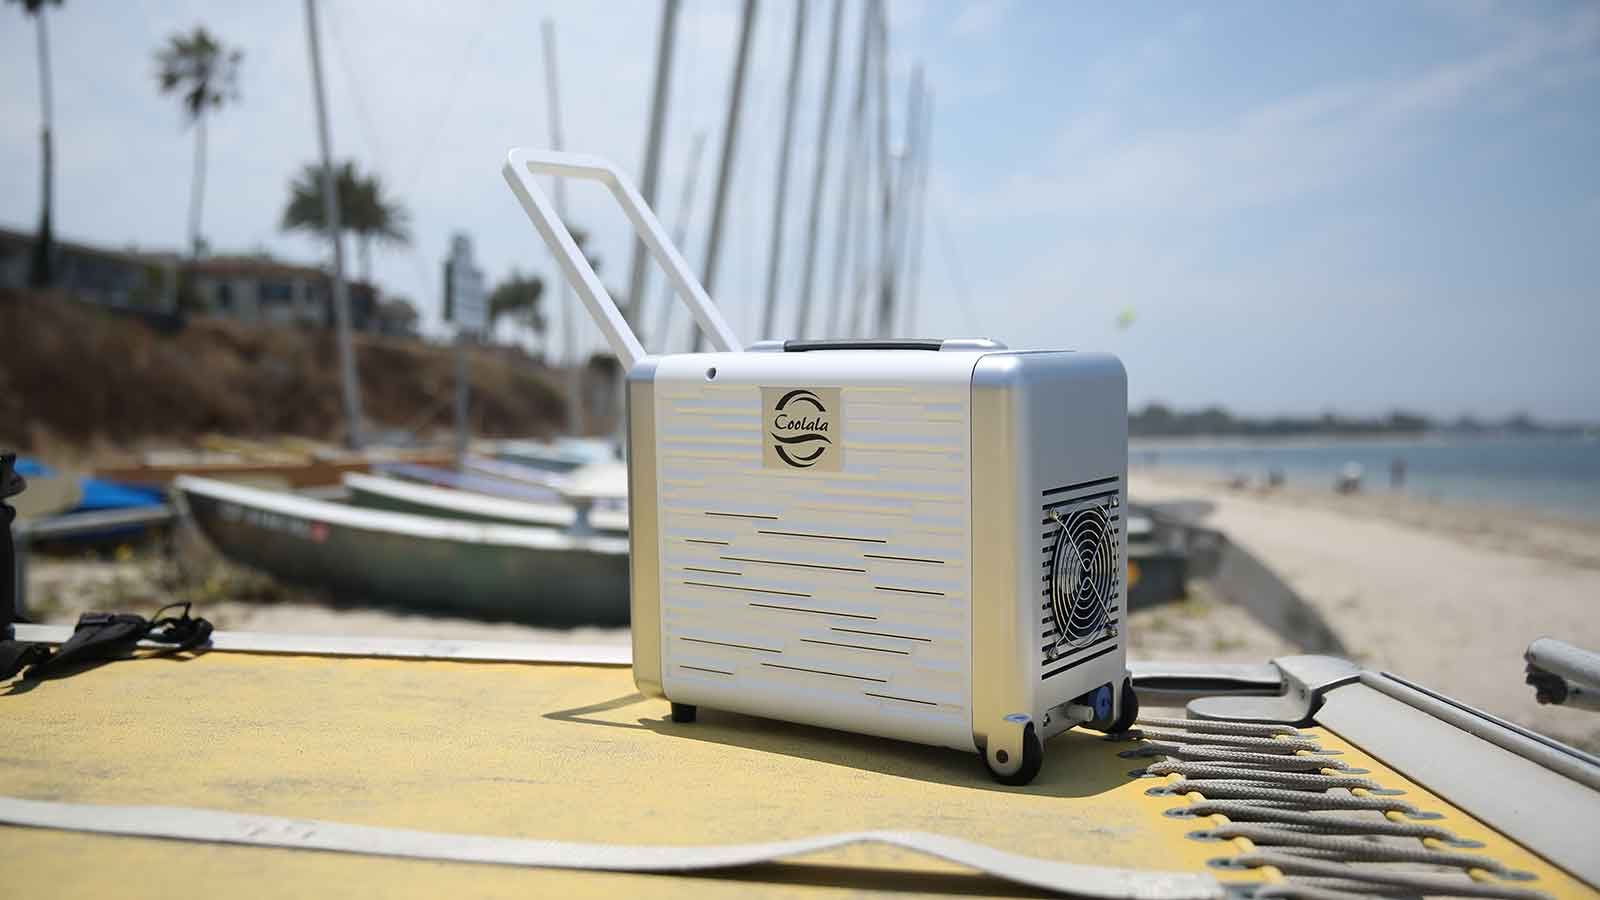 Coolala is the world's first portable, solar-powered A/C unit